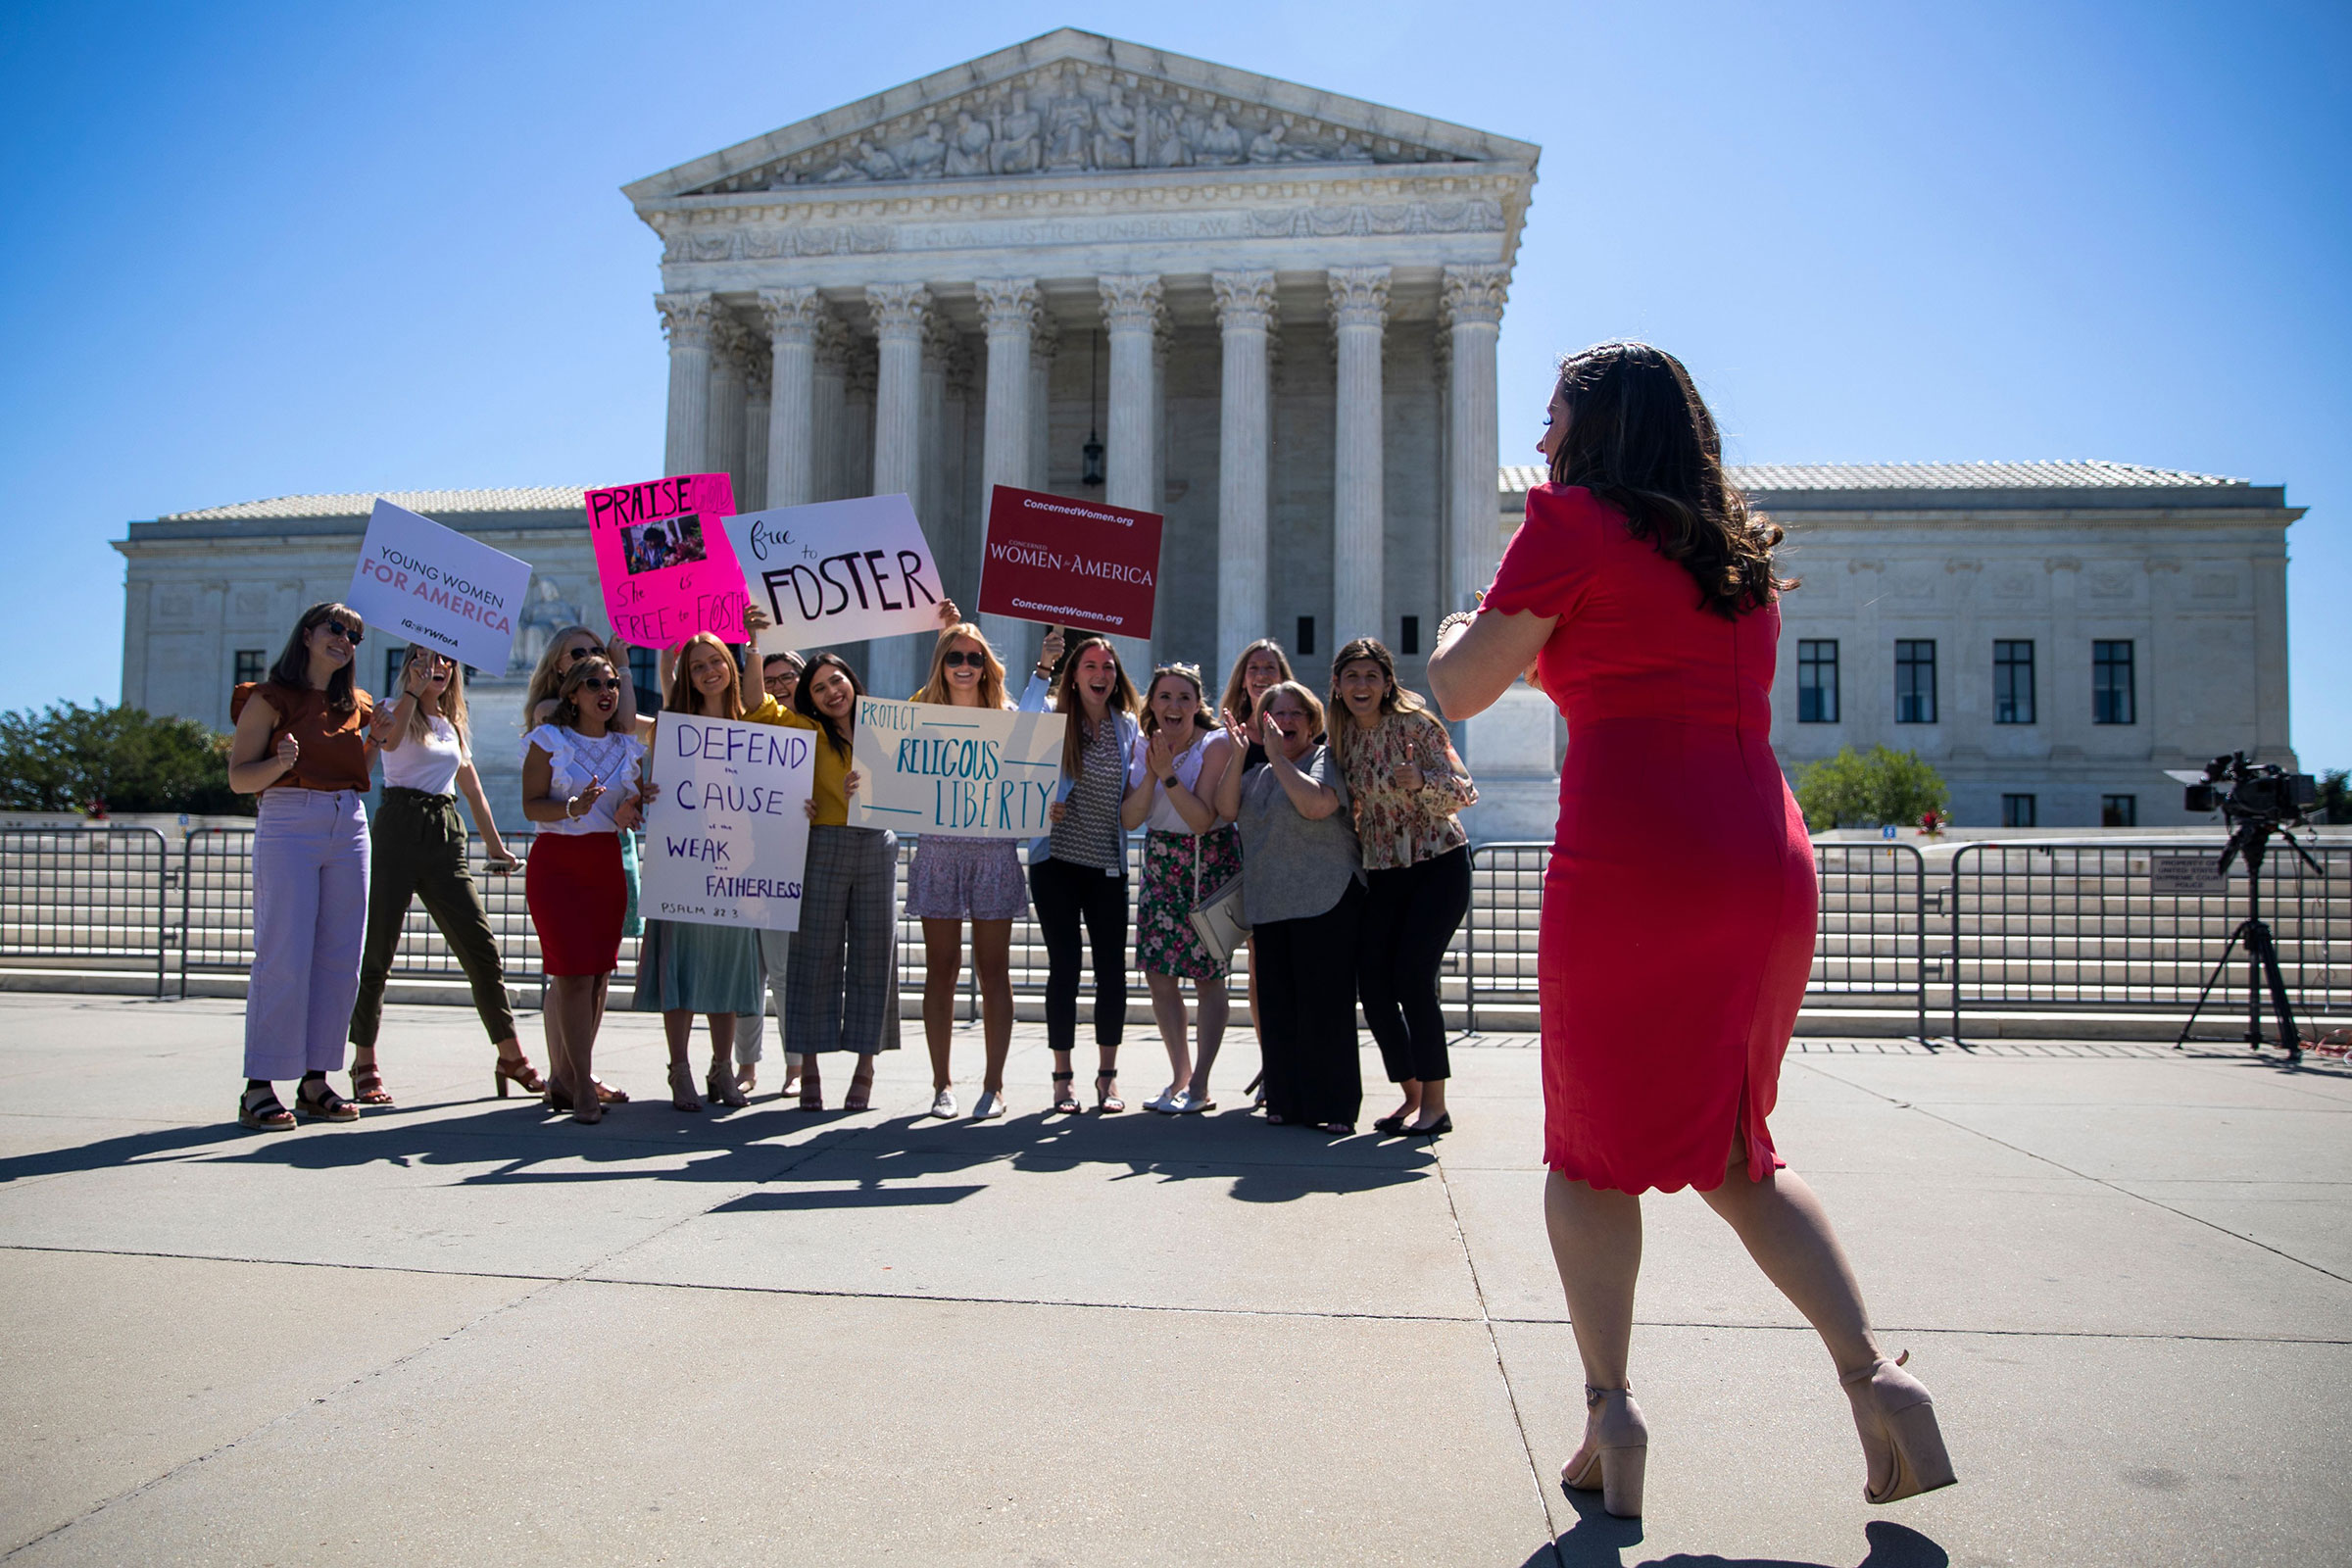 People stand in front of the Supreme Court in Washington, DC on June 17, 2021.